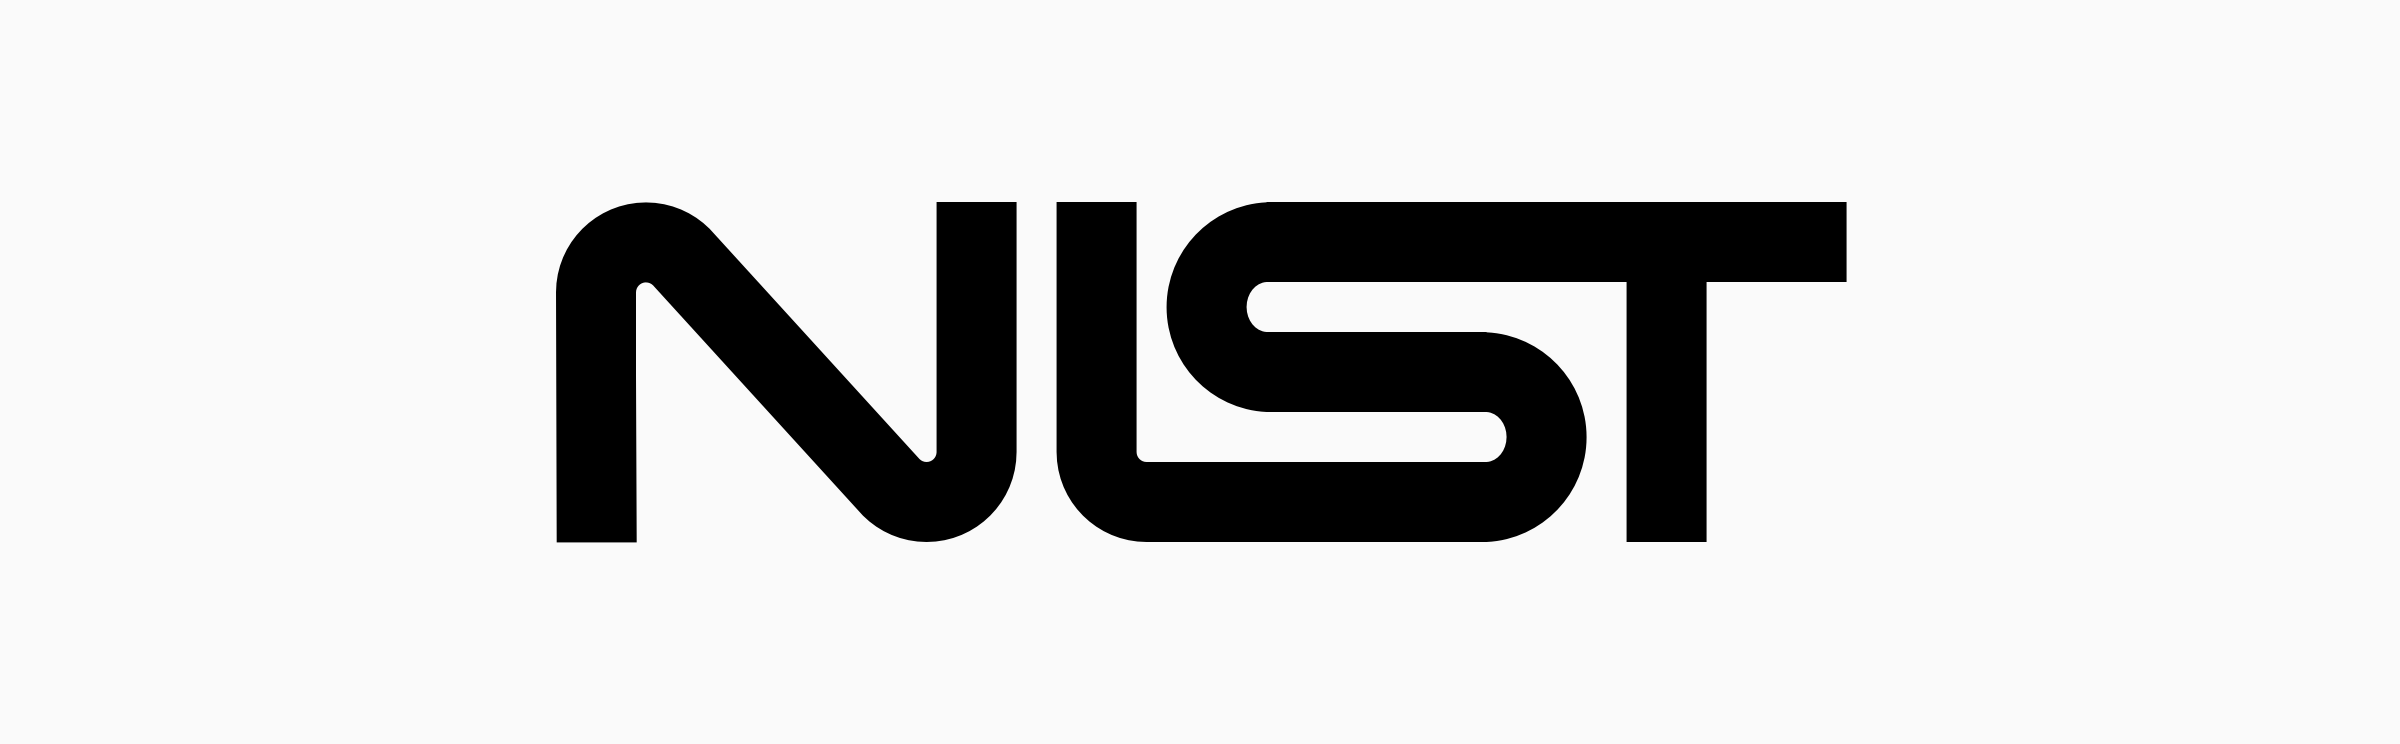 Digital Authentication Guideline: US NIST logo